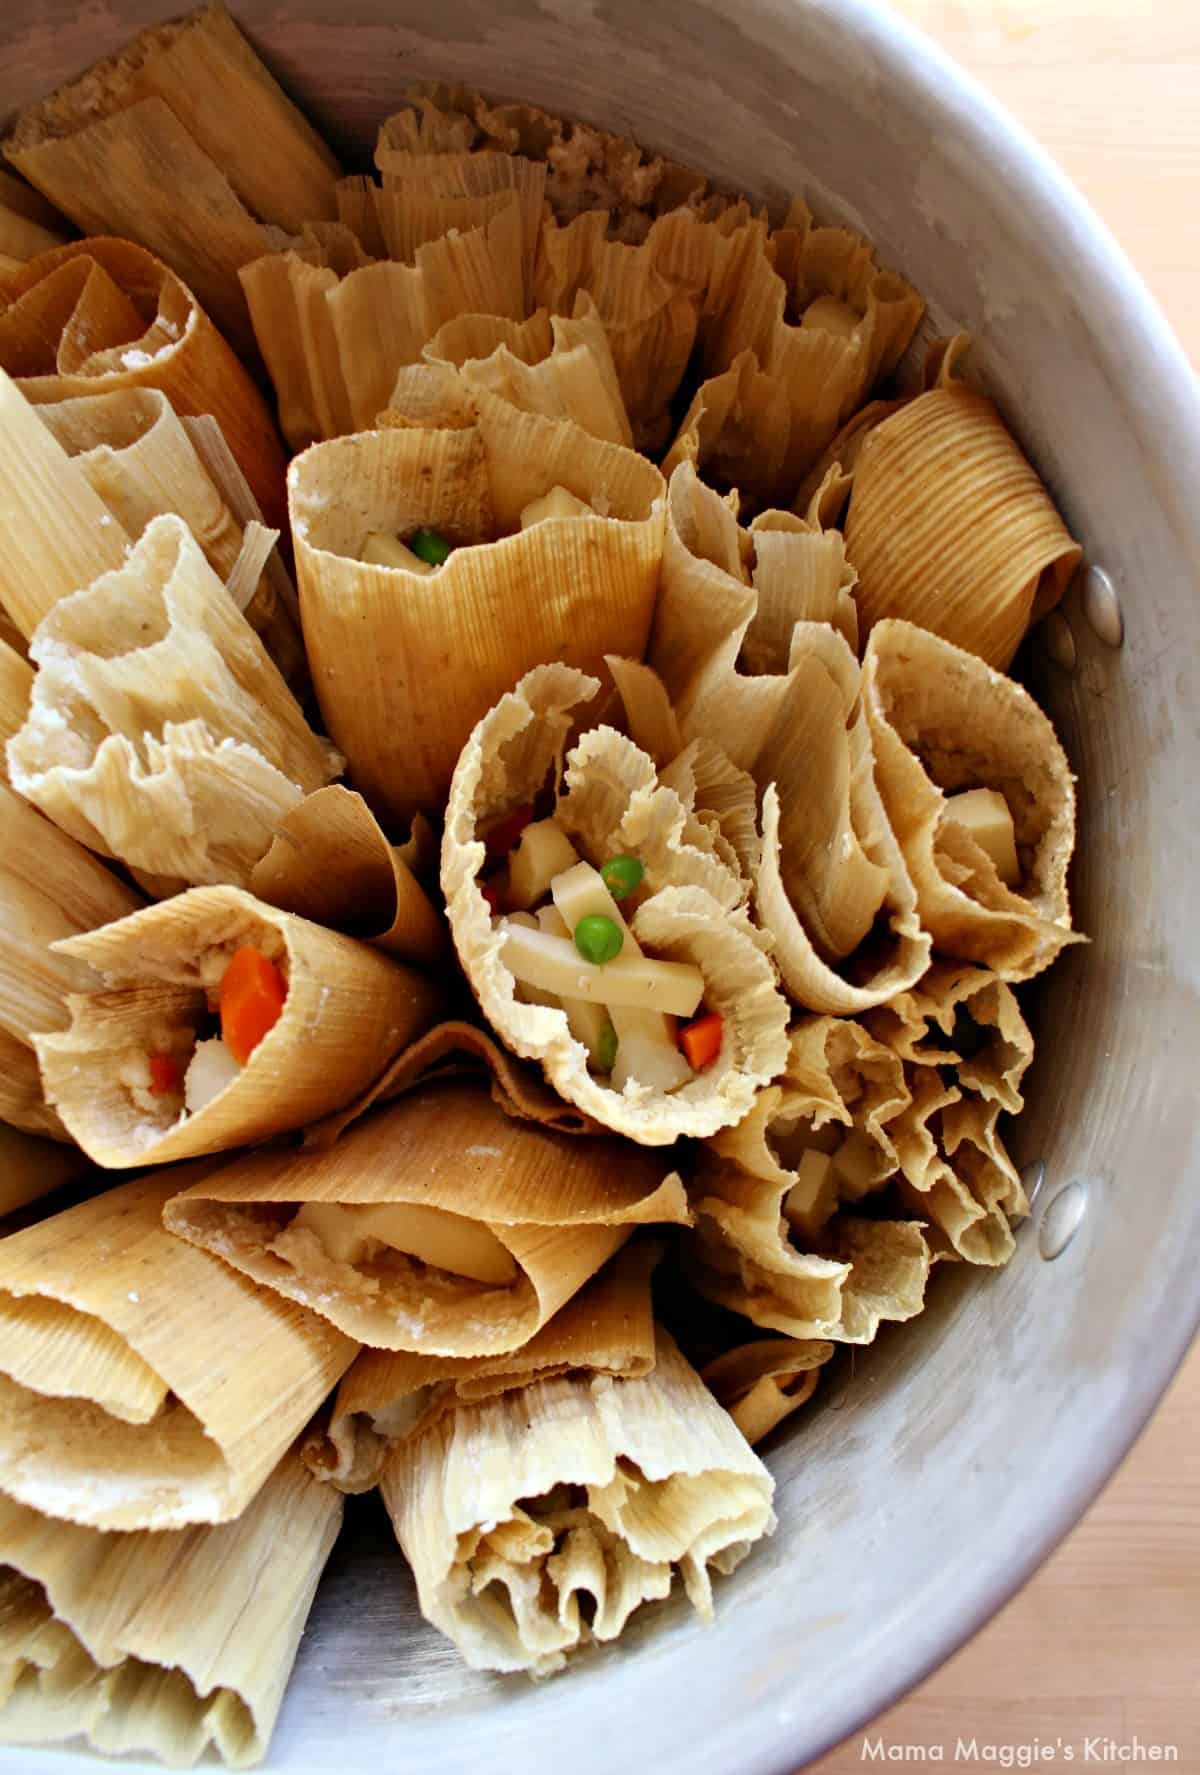 Uncooked tamales assembled in a steamer pot.